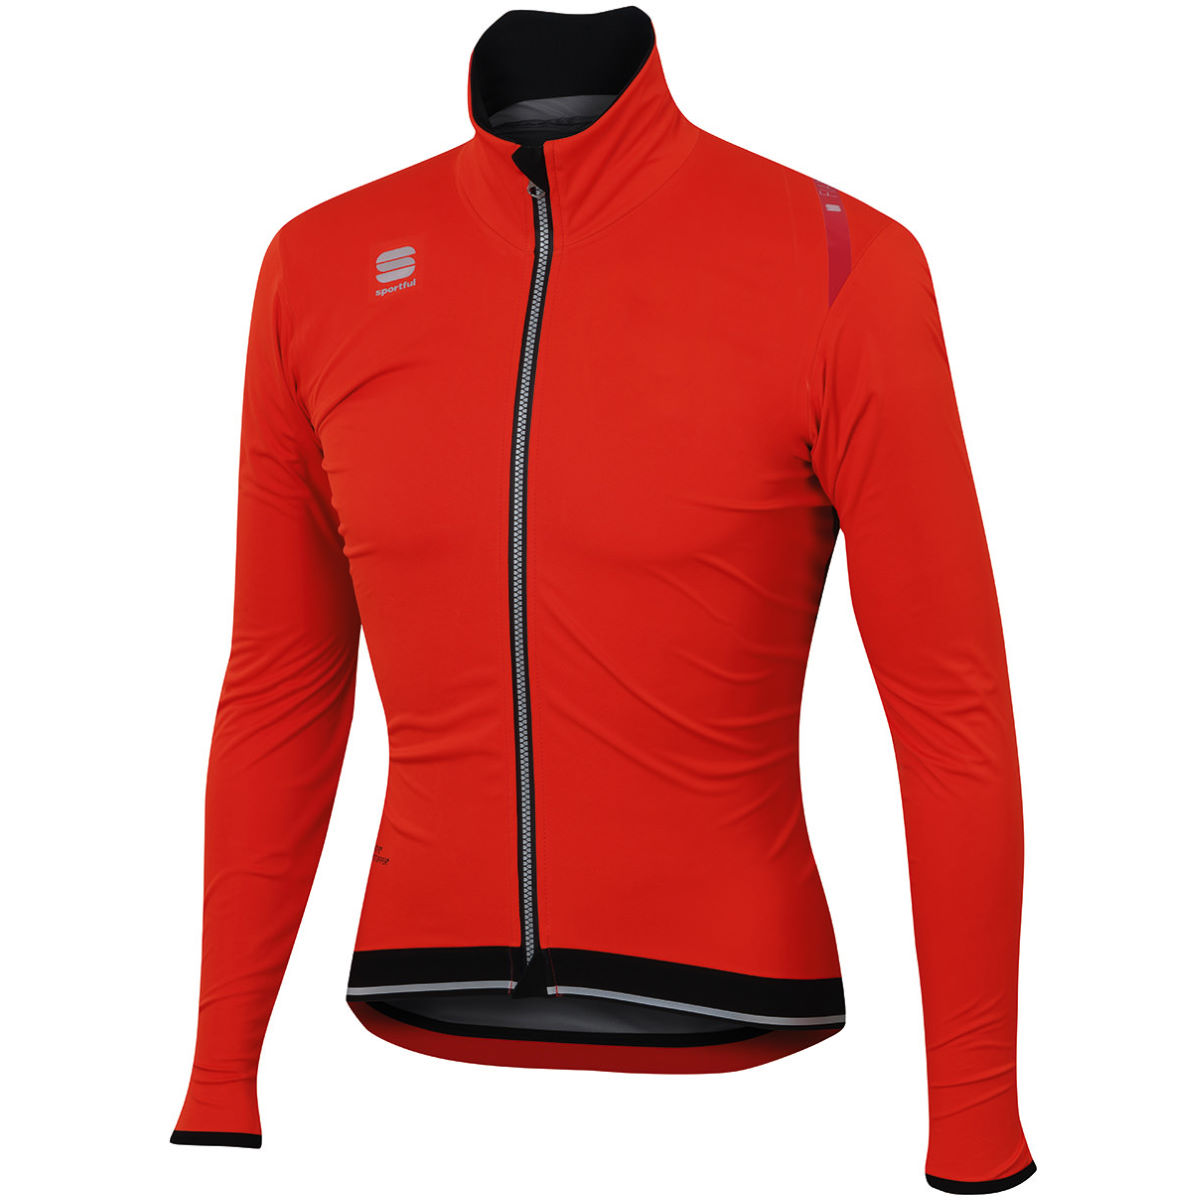 Veste Sportful Fiandre Ultimate Windstopper - L Fire Red/Black